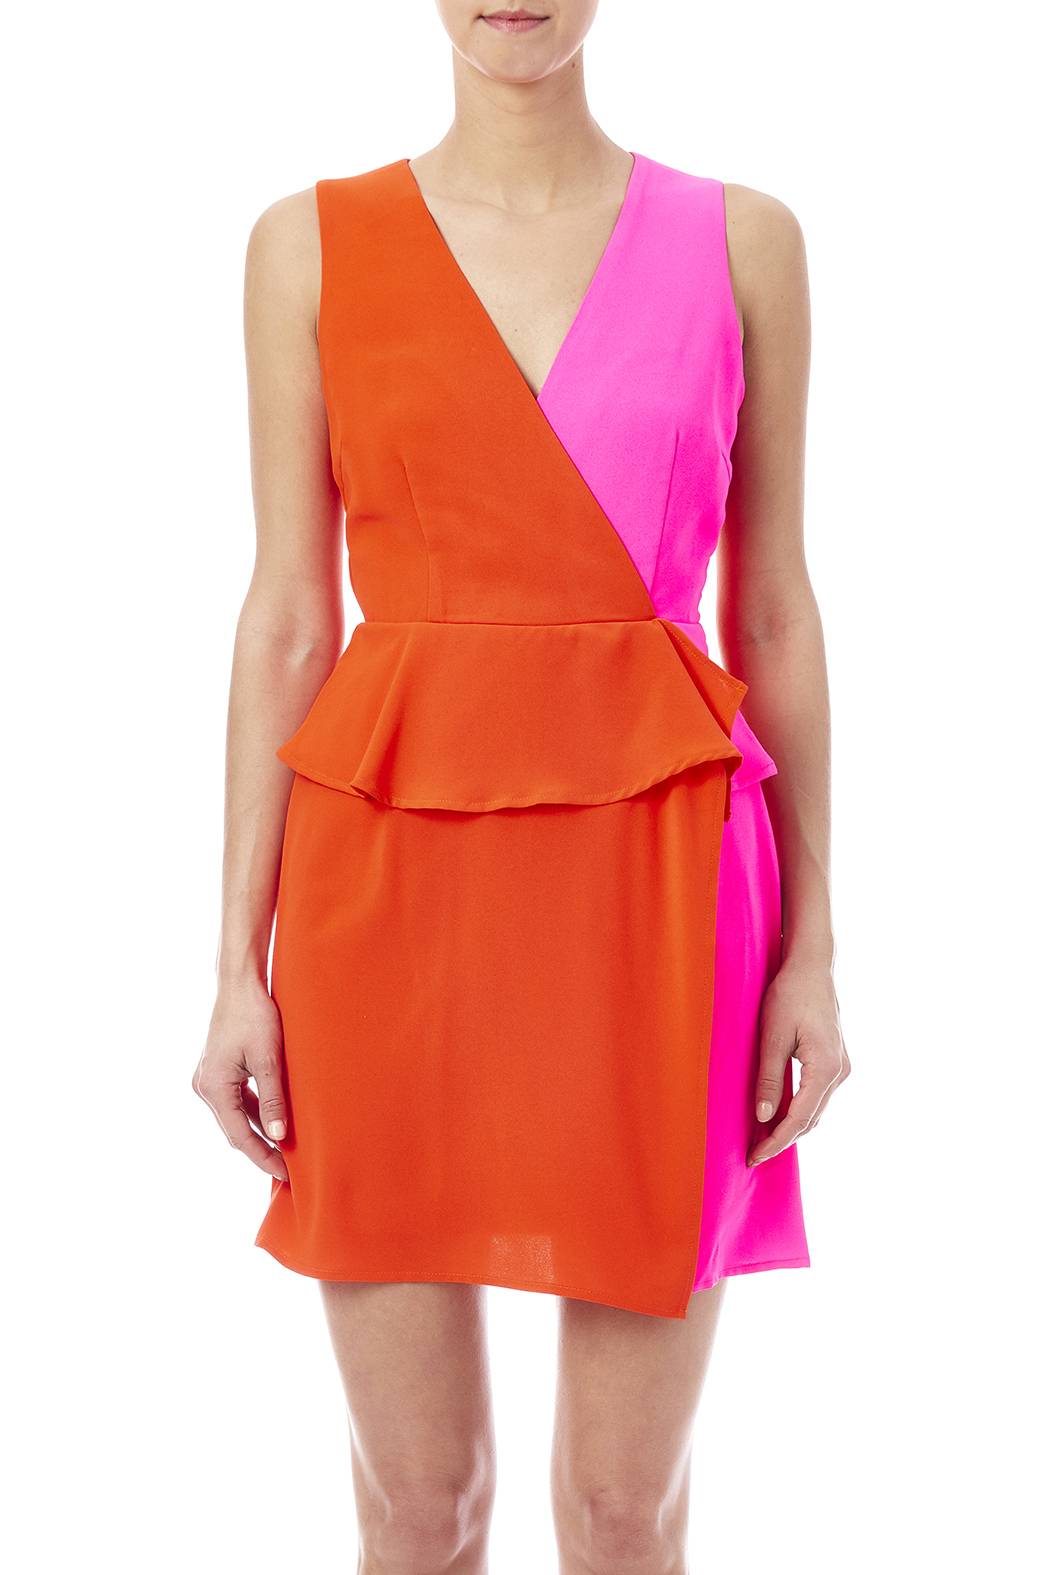 C. Luce Colorblock Peplum Dress - Side Cropped Image